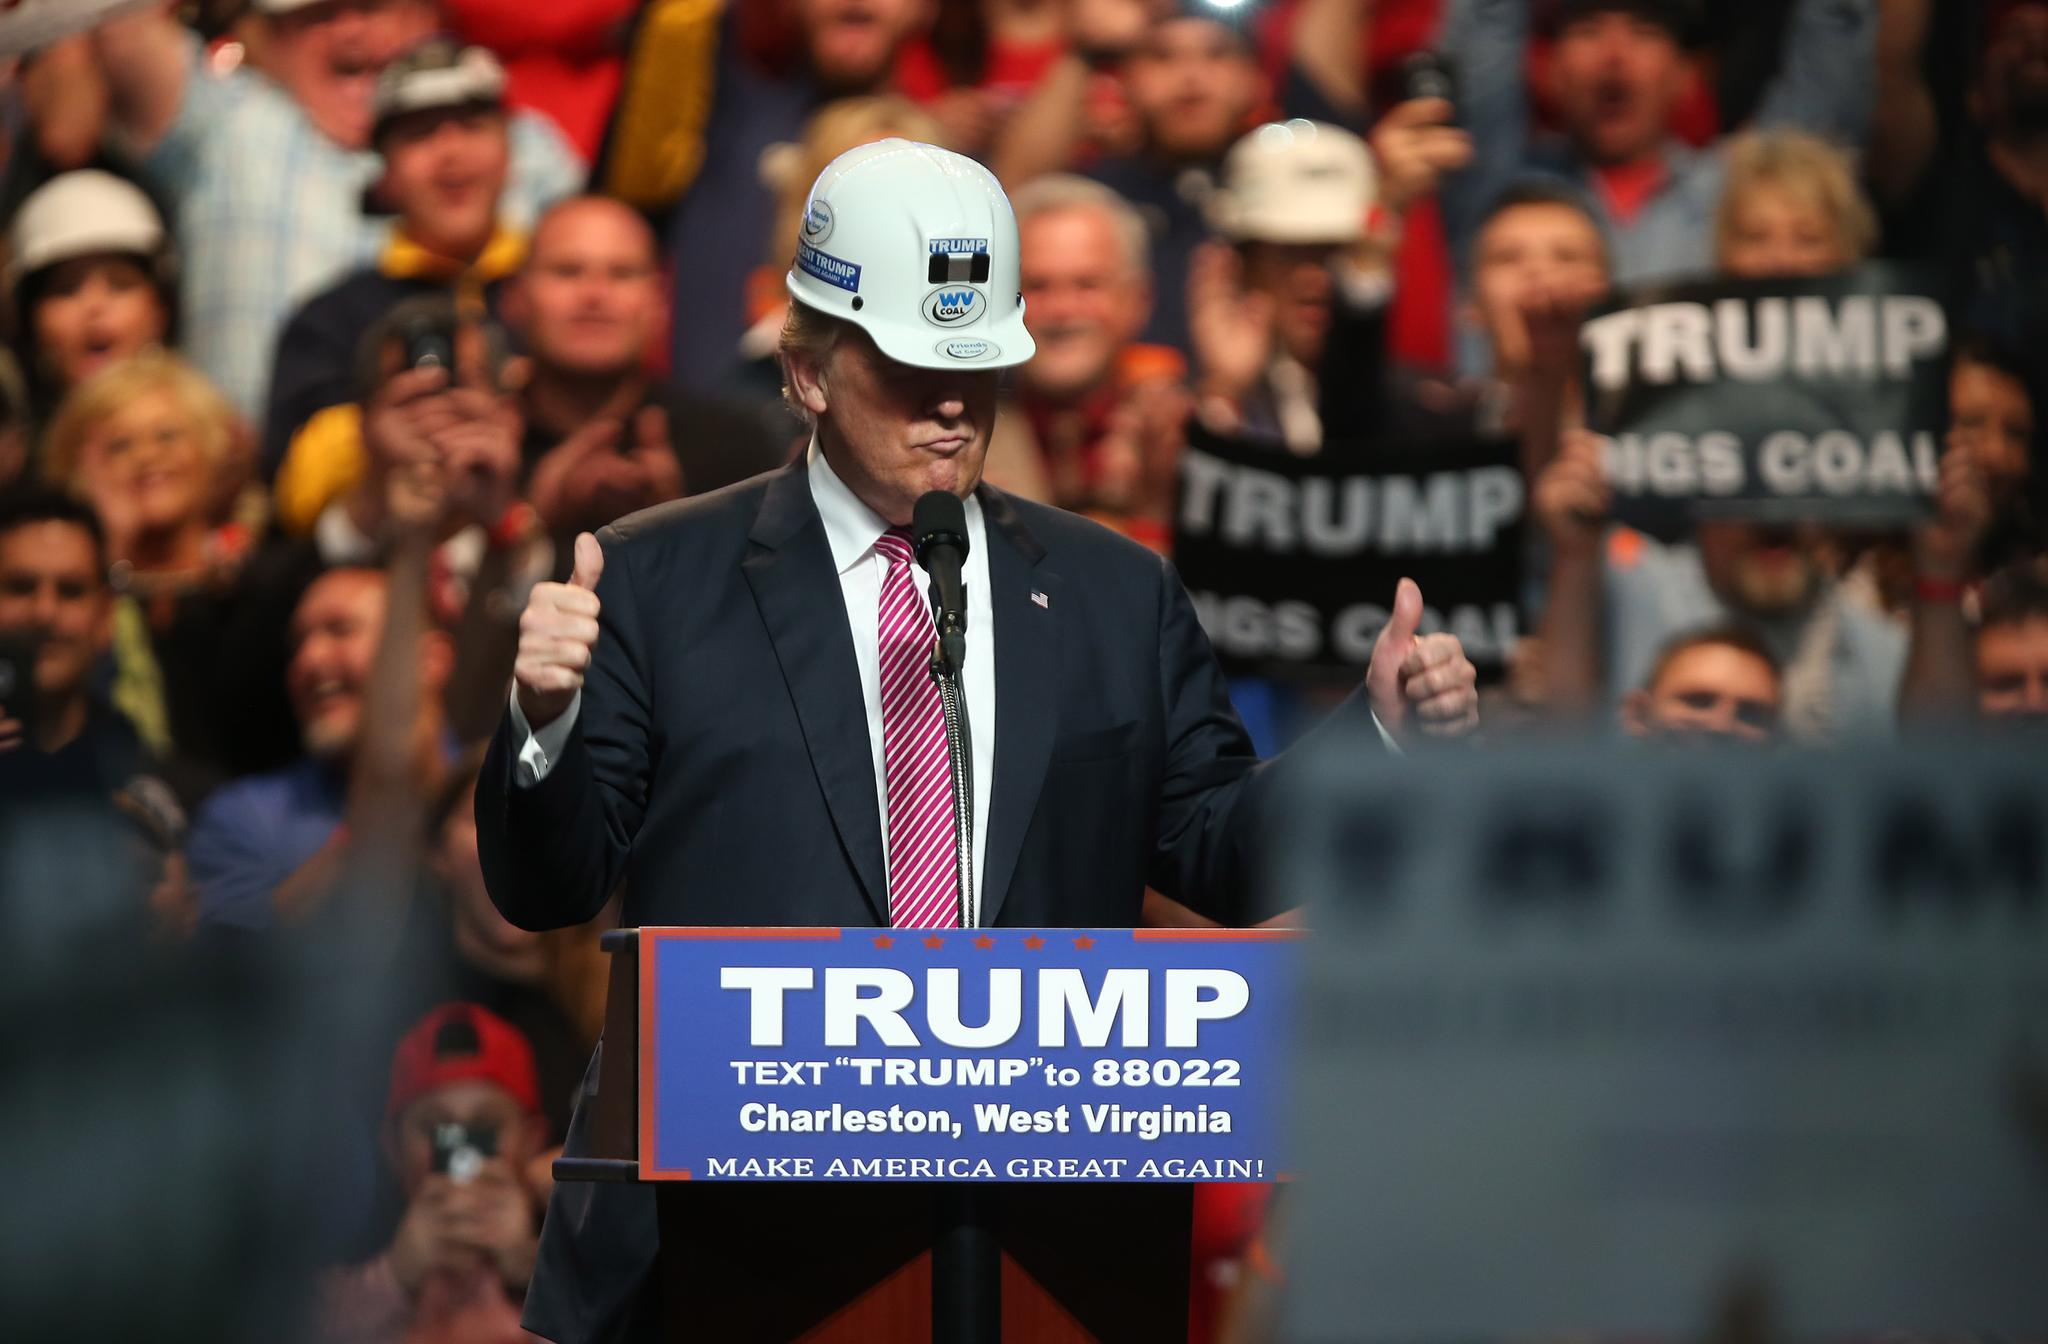 President Donald Trump Campaigned To End The War On Coal While Running For